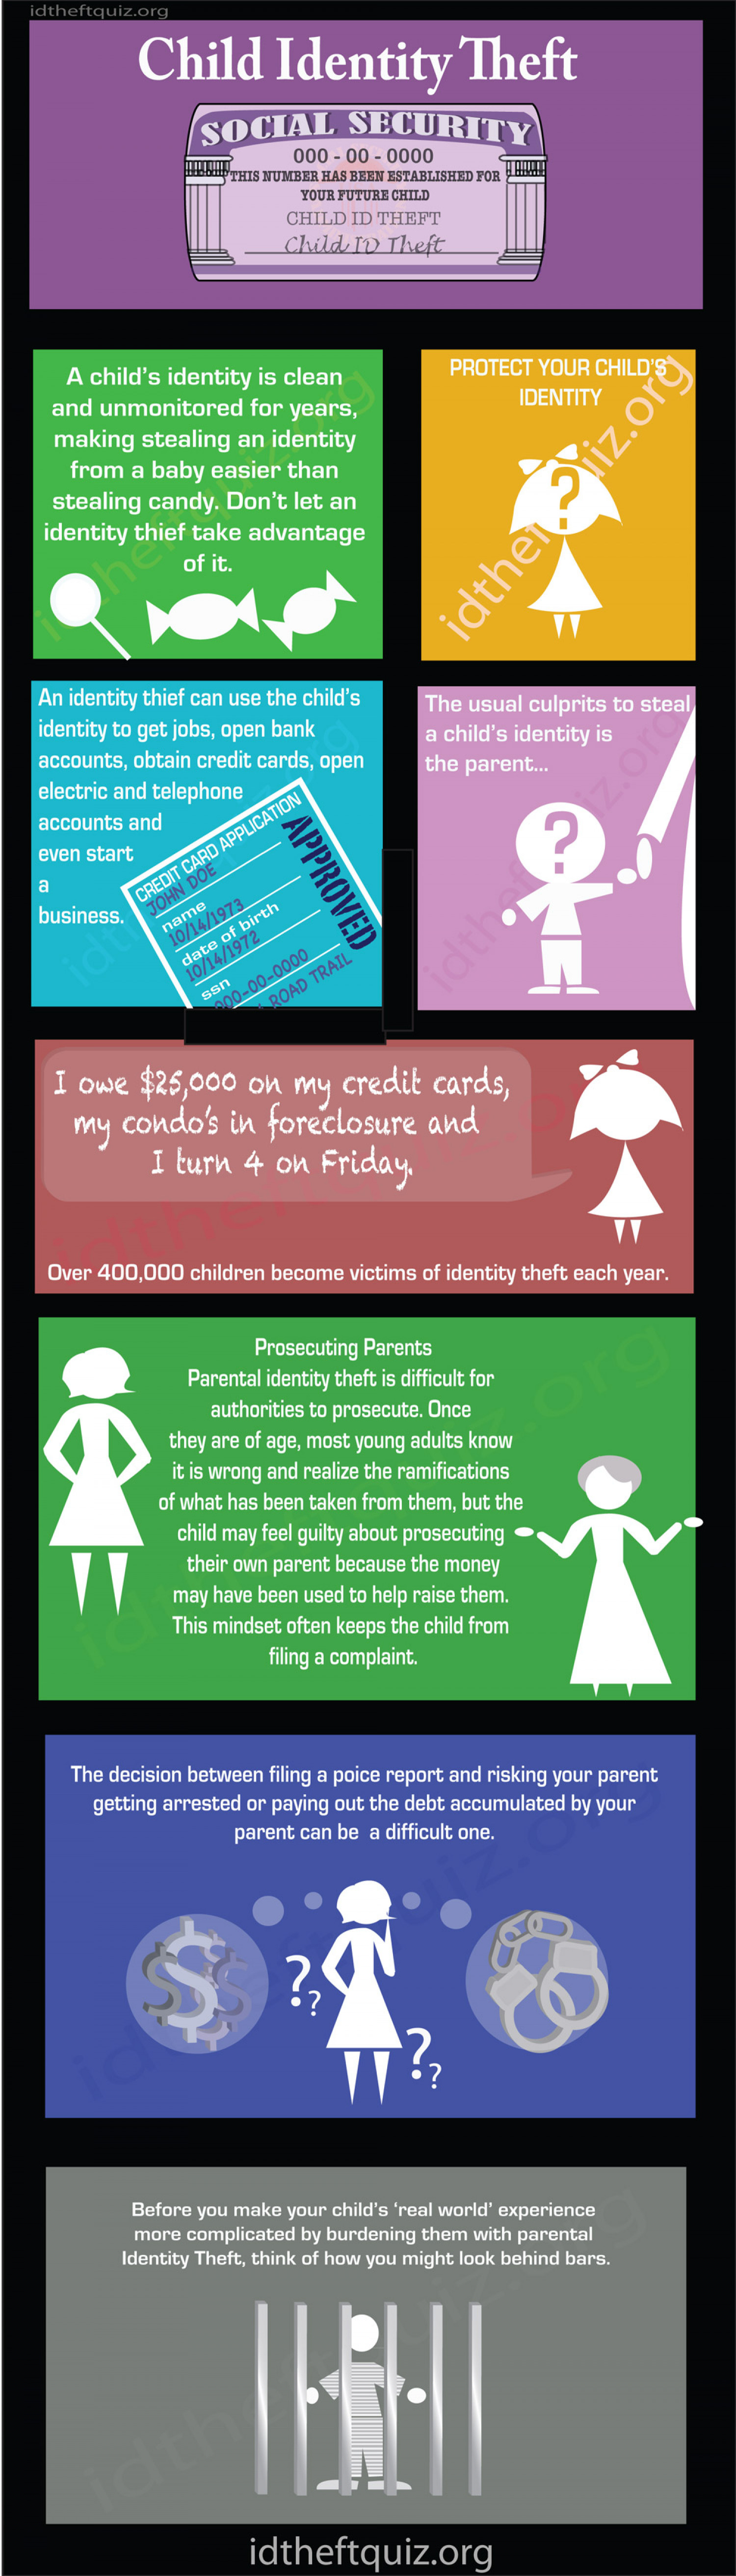 Child Identity Theft Infographic